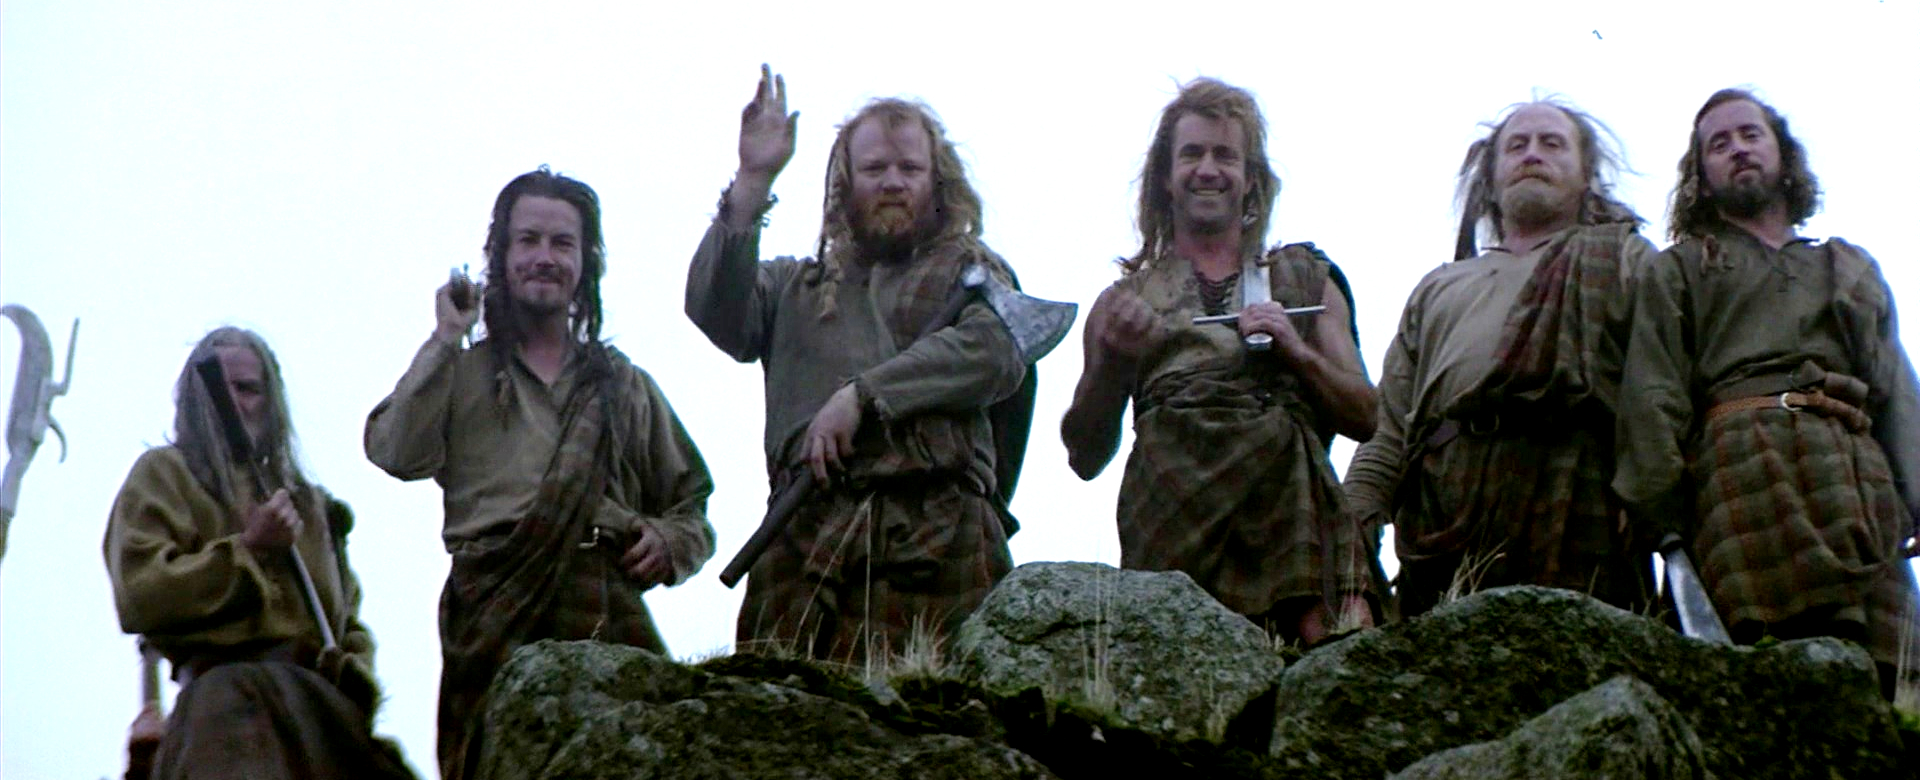 Rebellious Facts About Braveheart